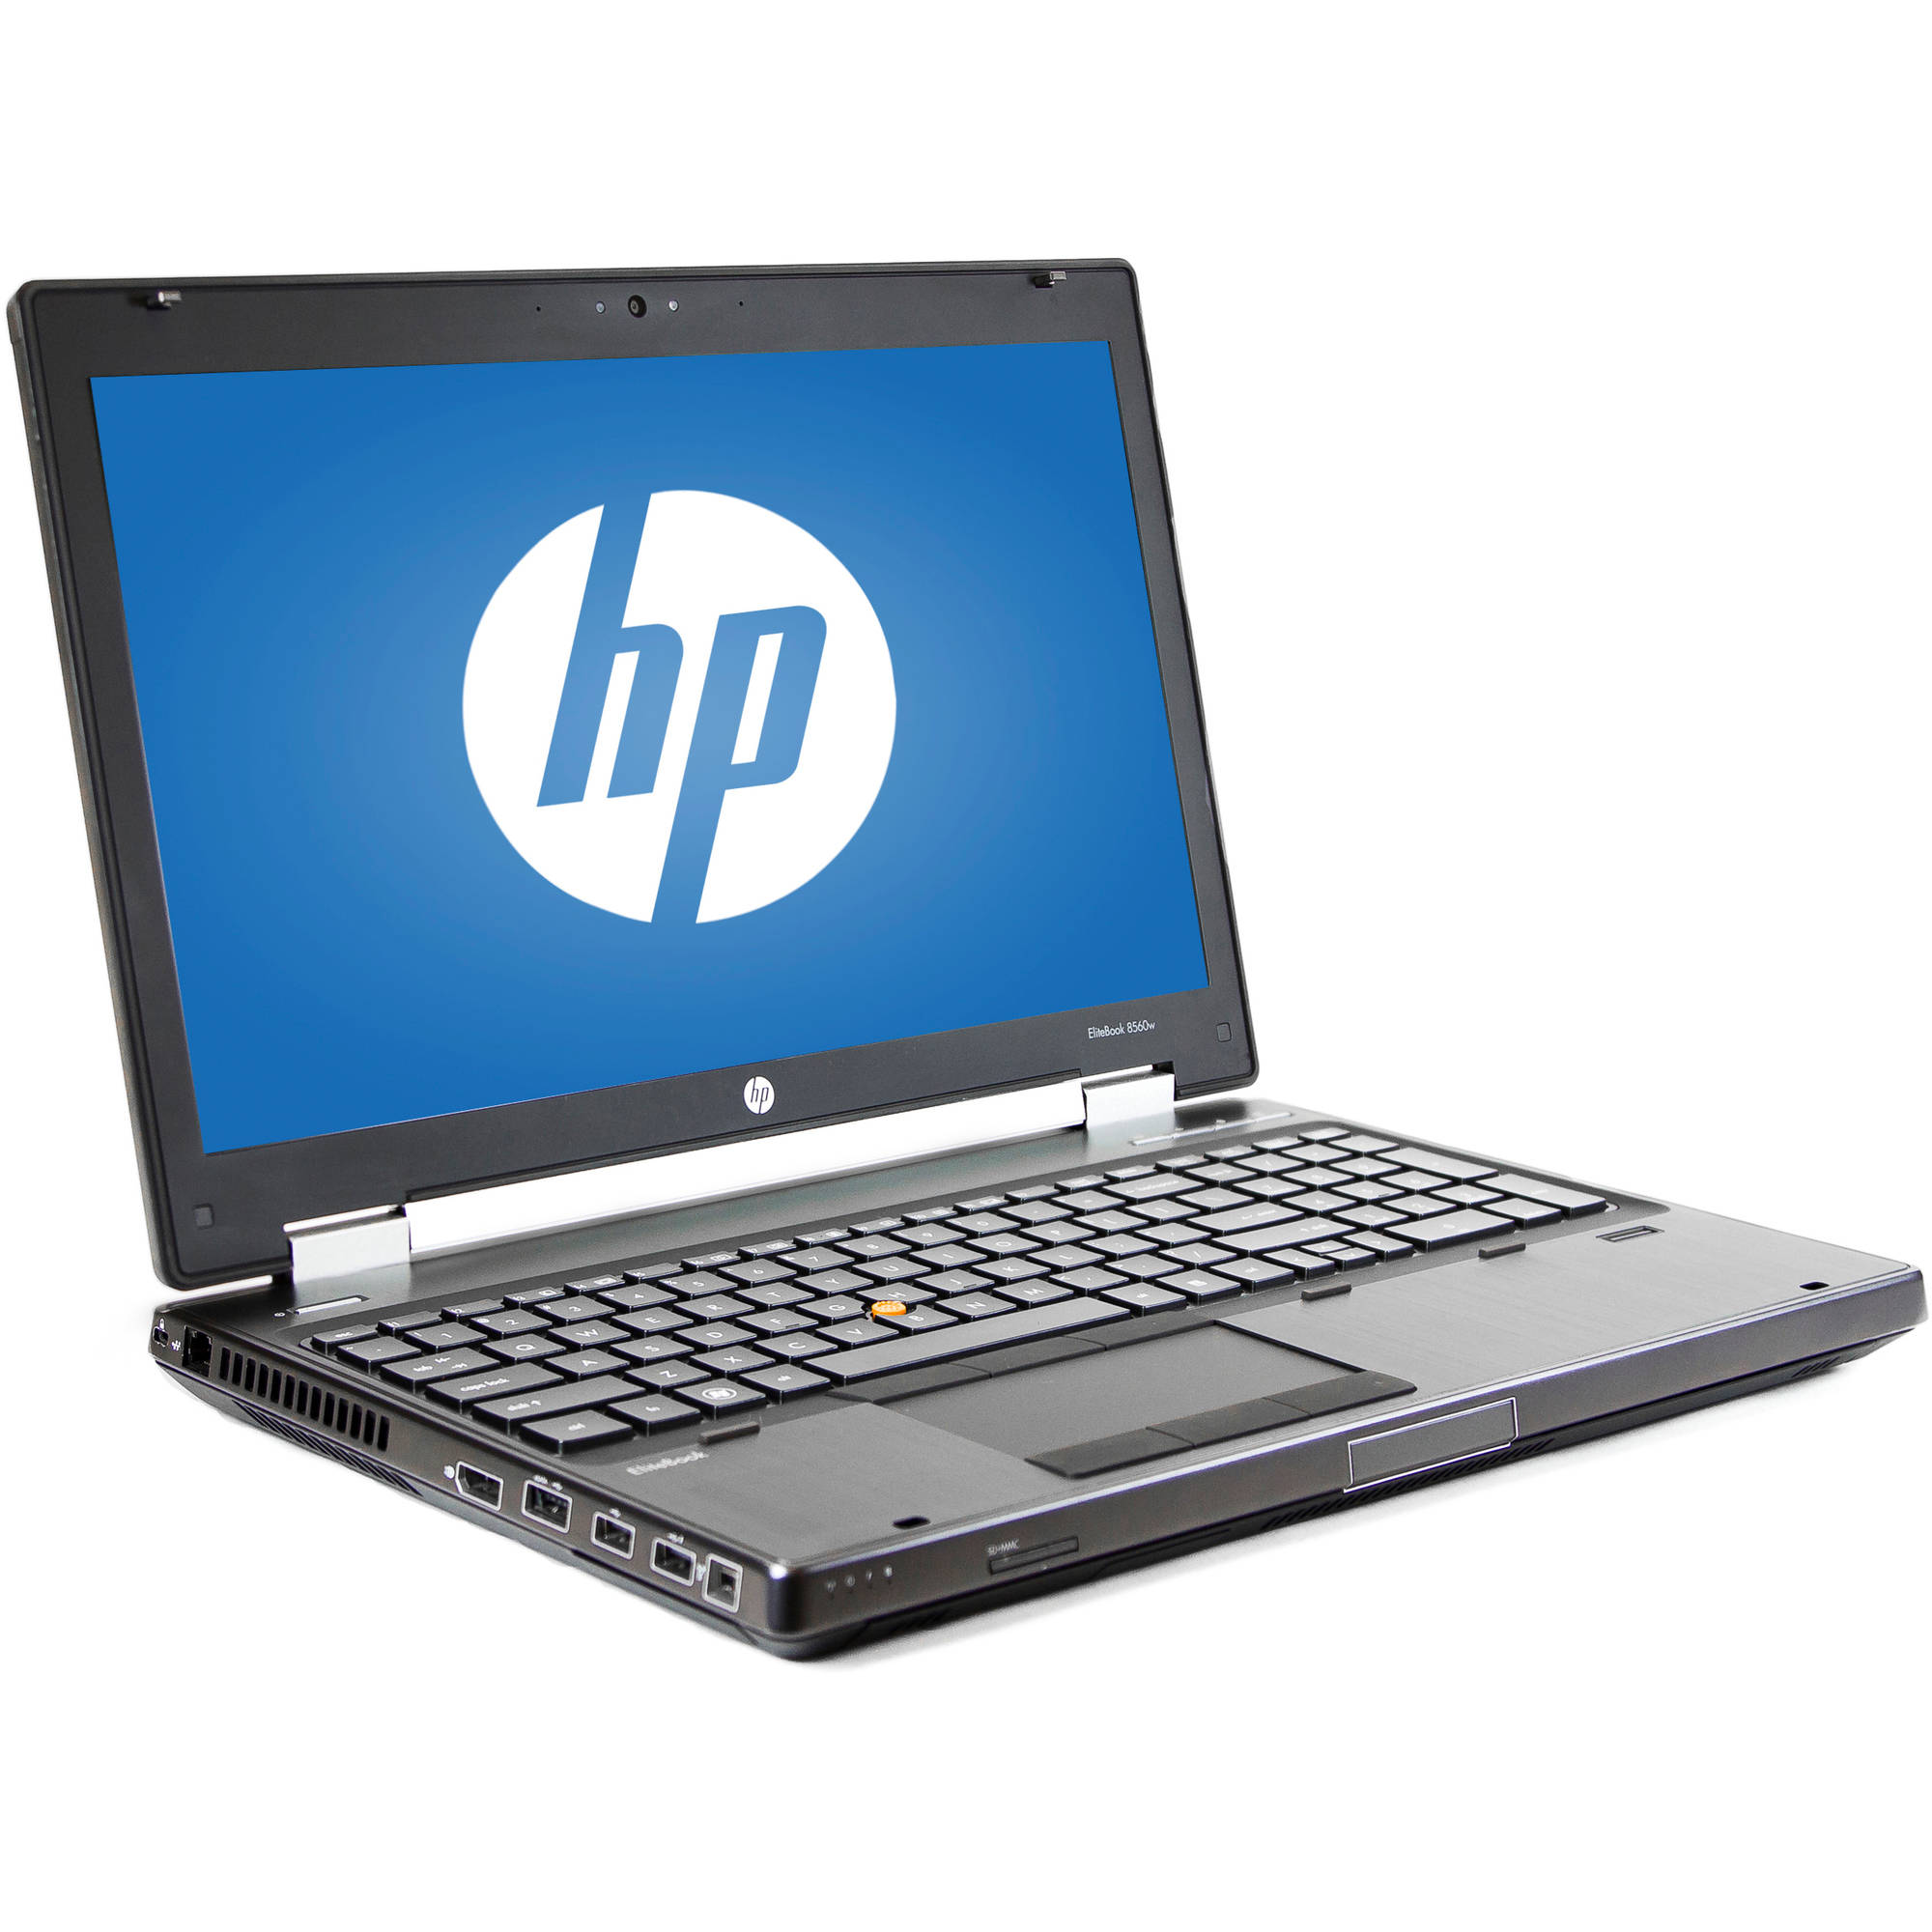 "Refurbished HP Silver 15.6"" 8560W Elitebook Laptop PC with Intel Core i7-2820QM Processor, 8GB Memory, 500GB Hard Drive and Windows 7 Professional"